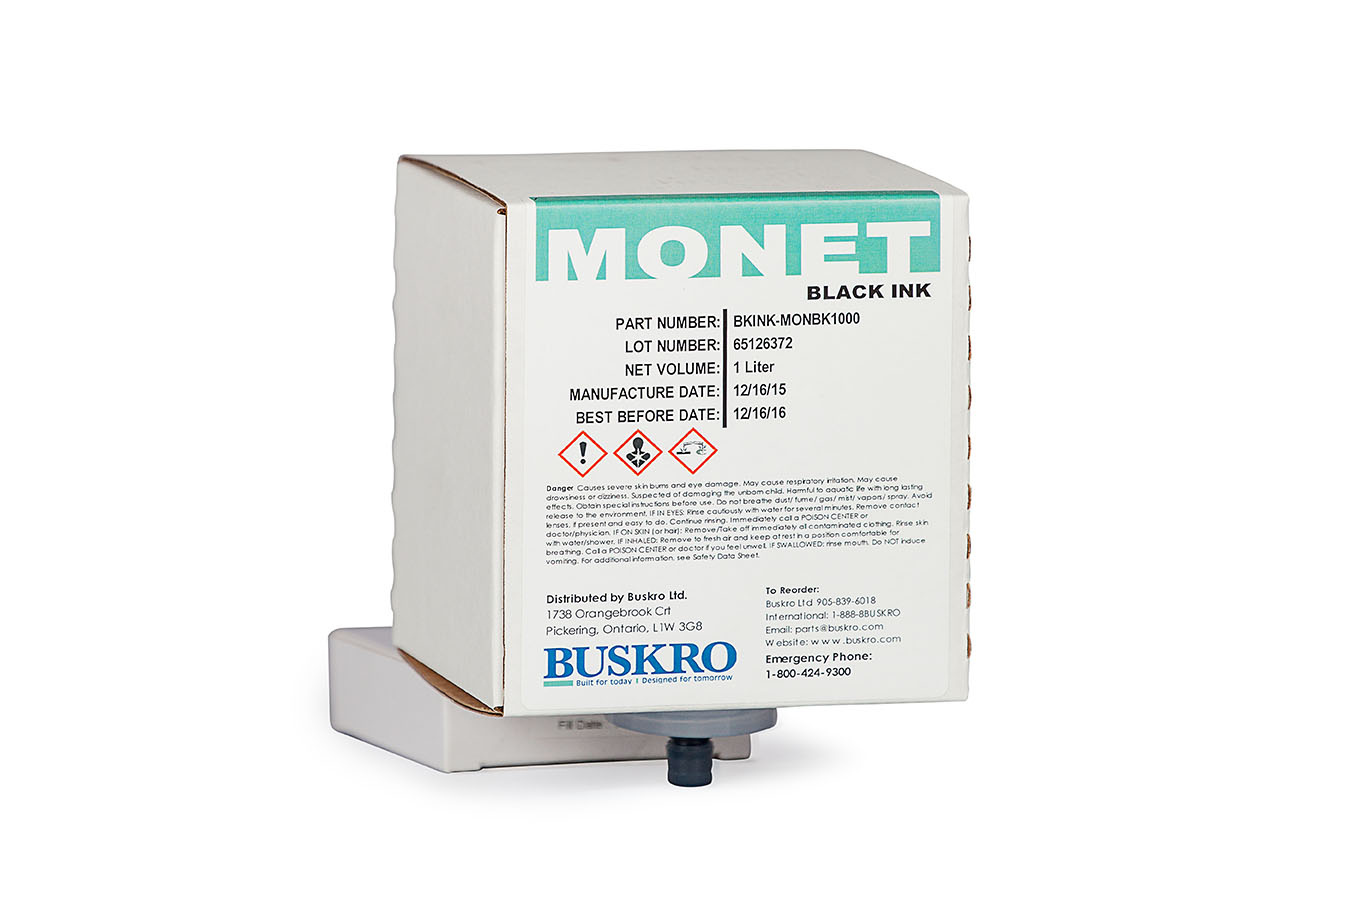 Buskro Monet Black Ink